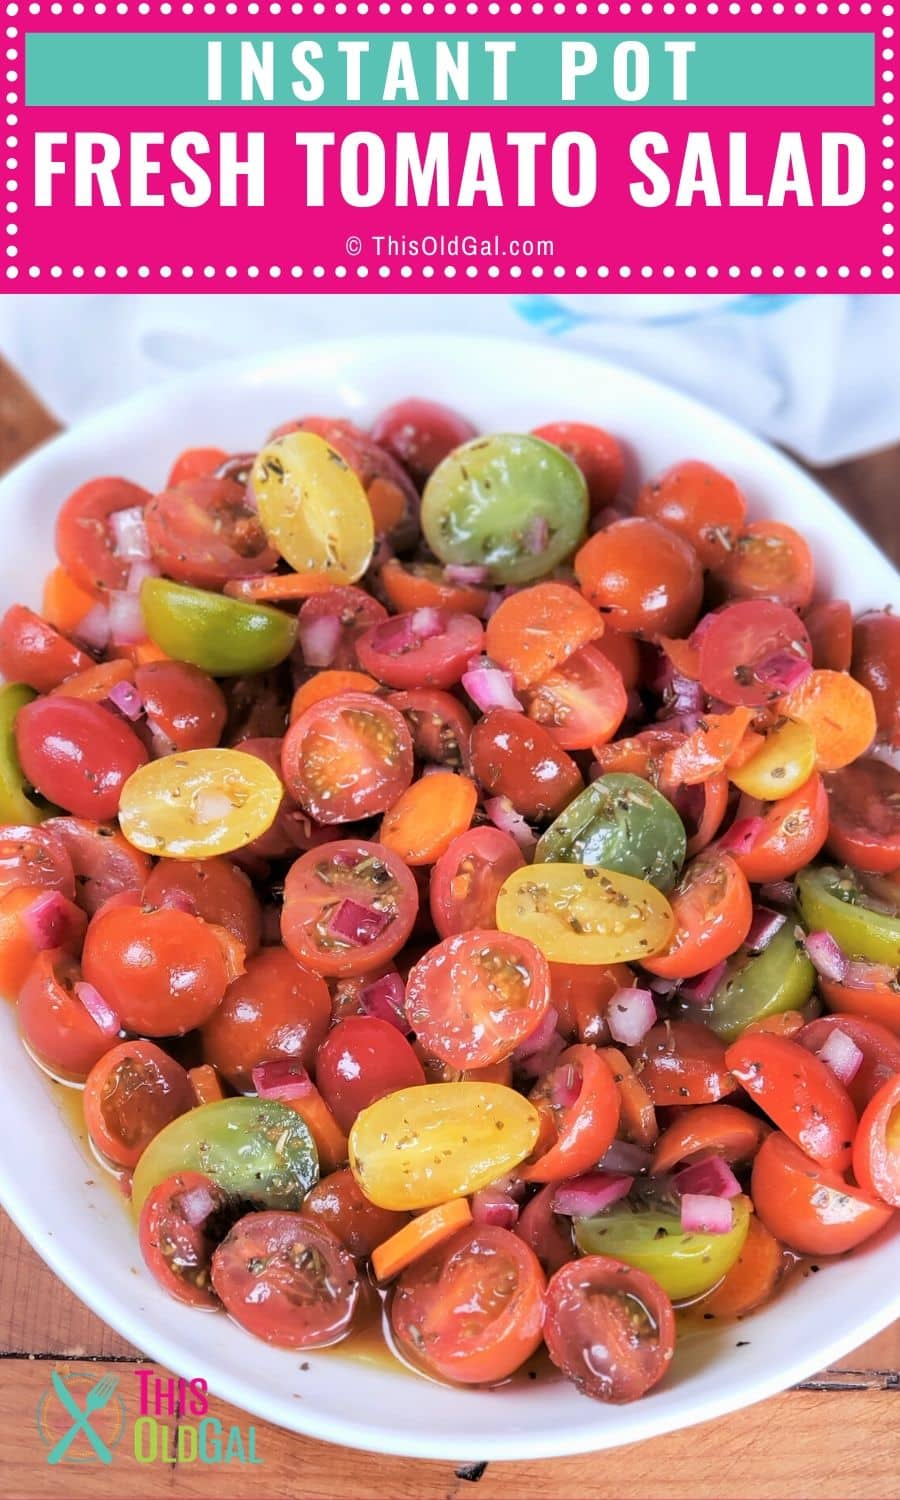 Hot Pink and Teal pinterest pin with a photo of tomato salad in a white bowl